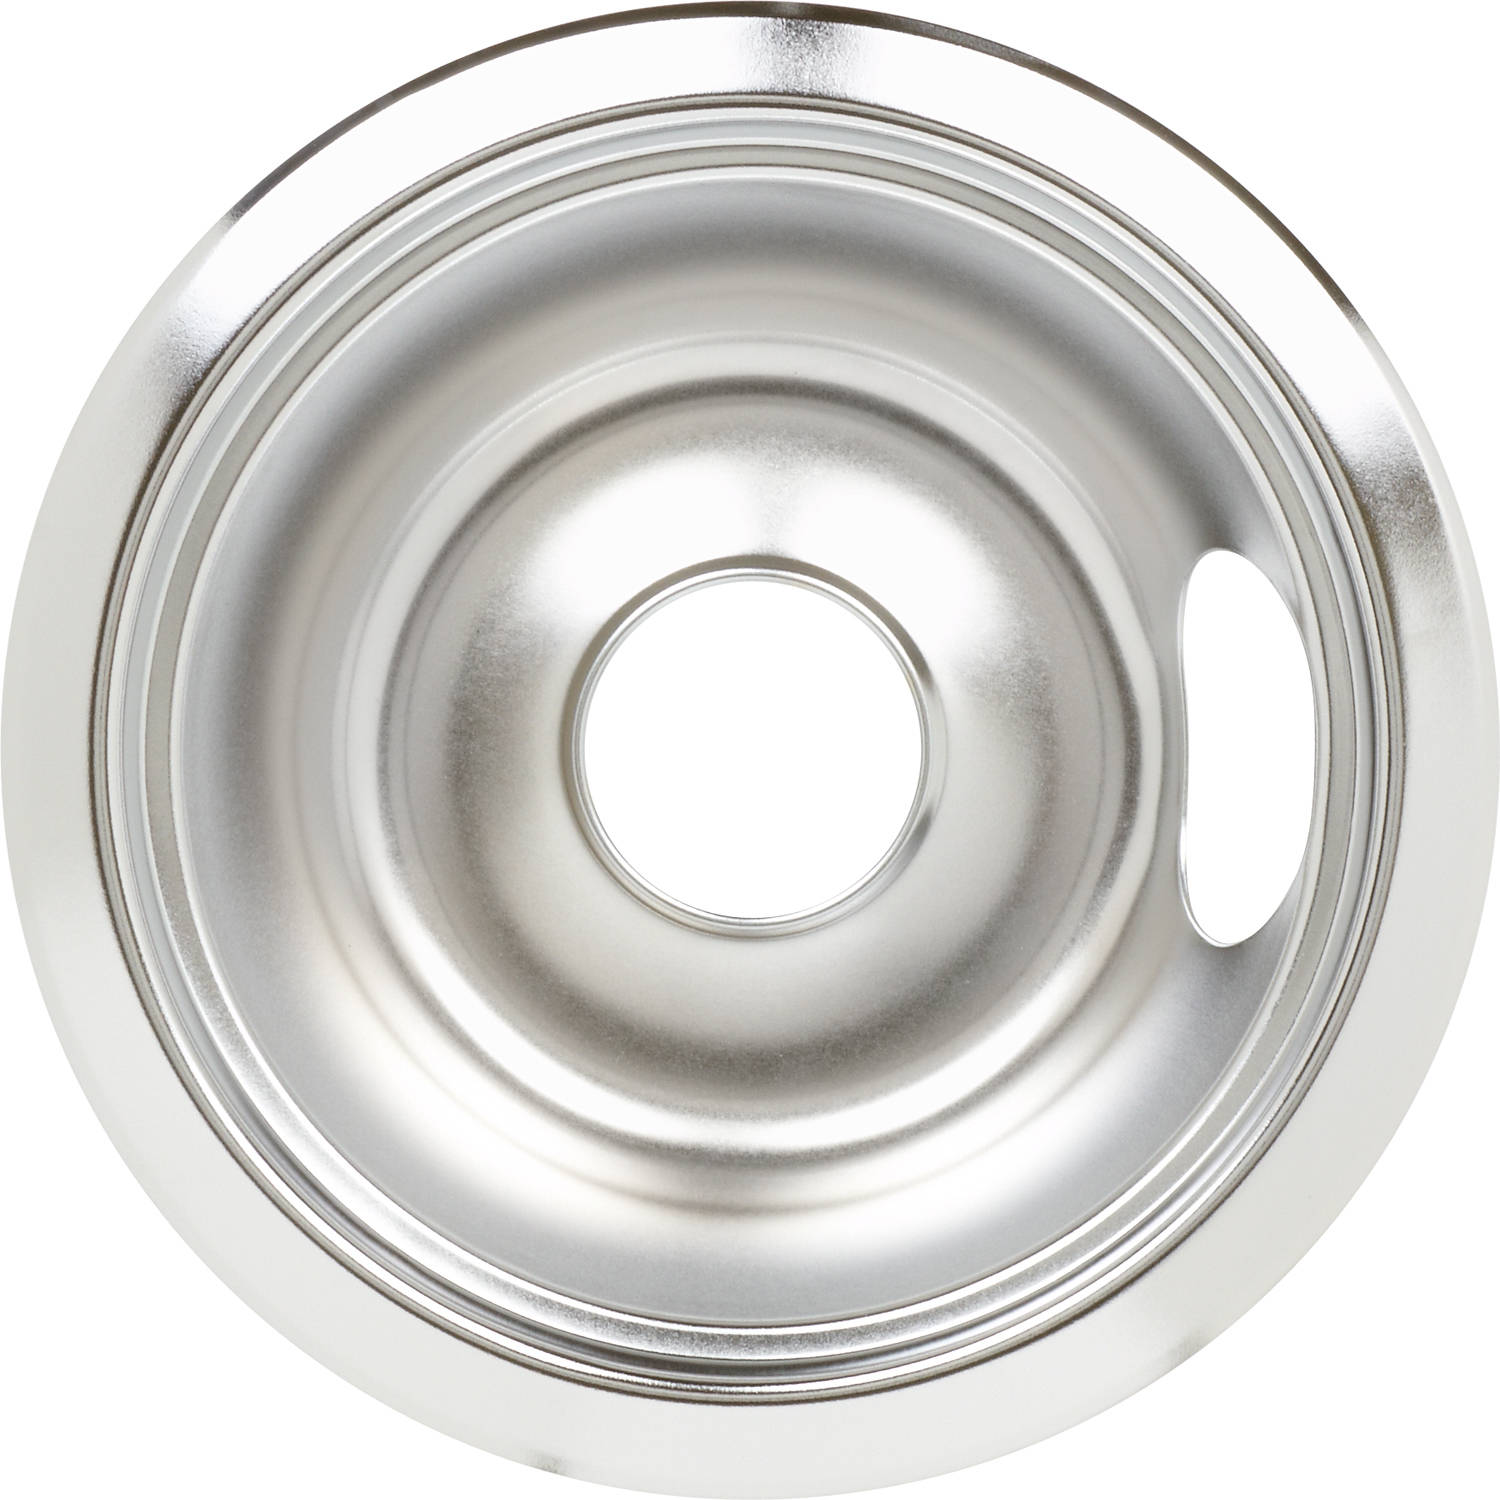 General Electric WB31X5010 6-Inch Drip Pan